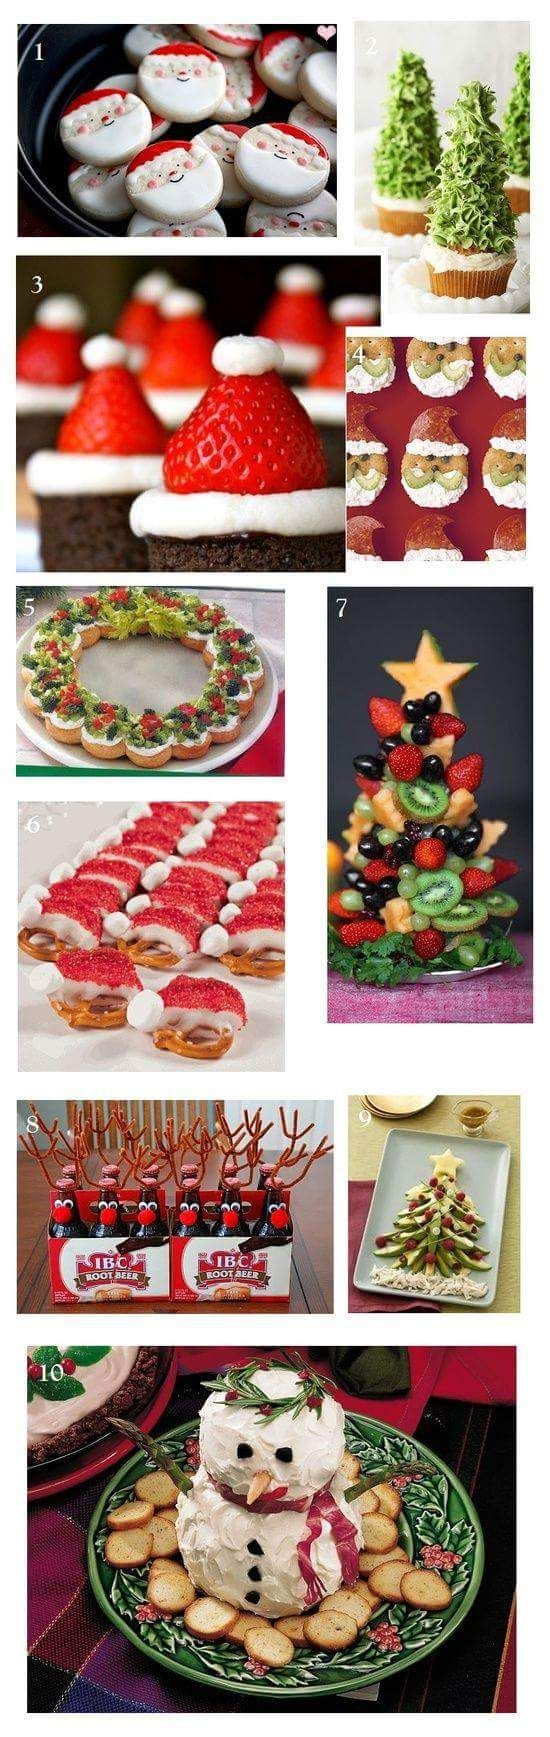 59 best . noël . images on Pinterest | Christmas time, Gifts and ...